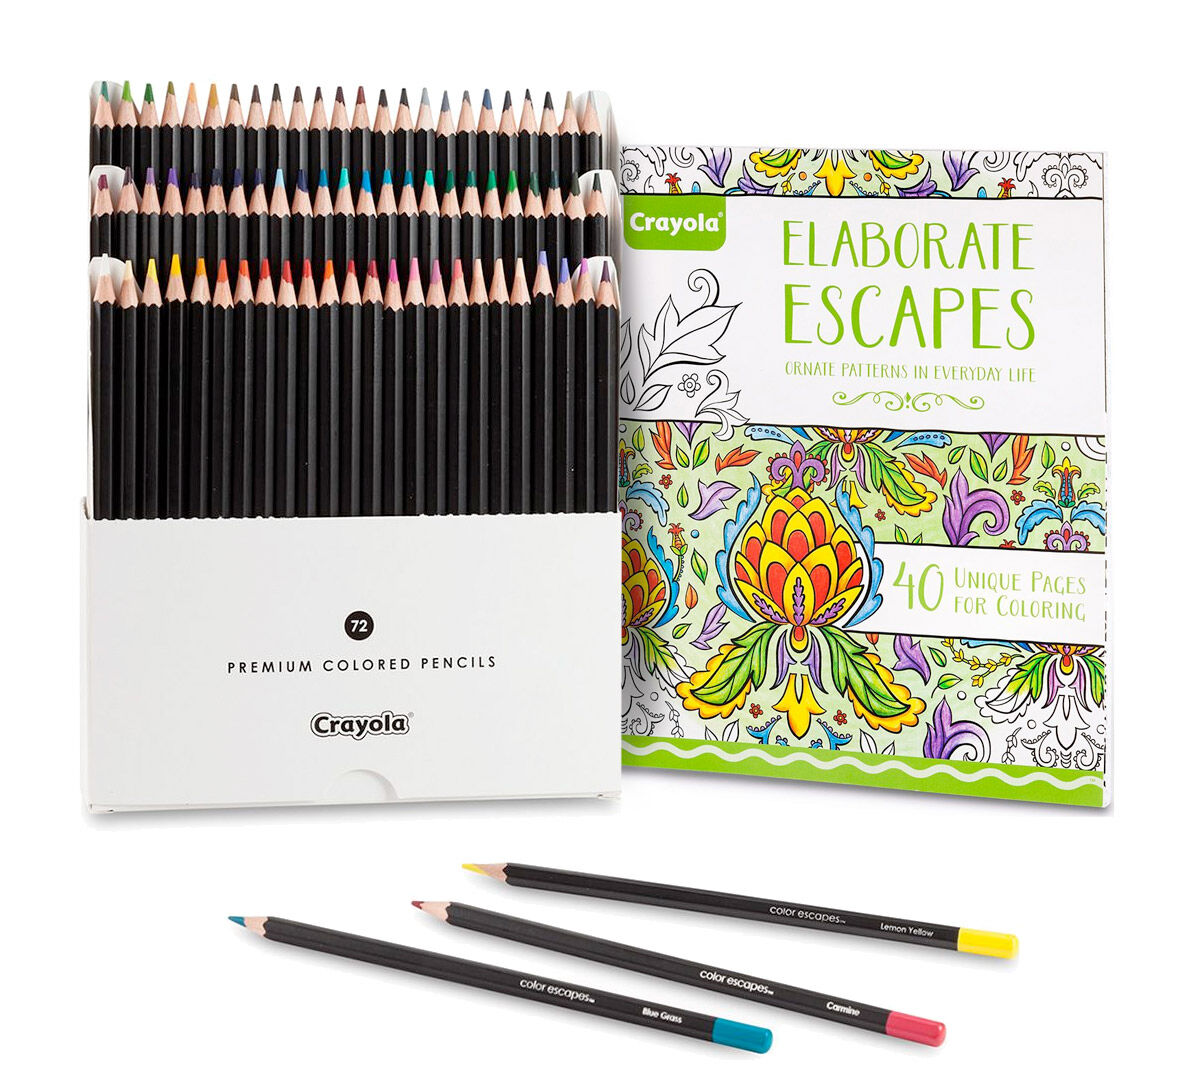 Elaborate Escapes Coloring Book Bundle